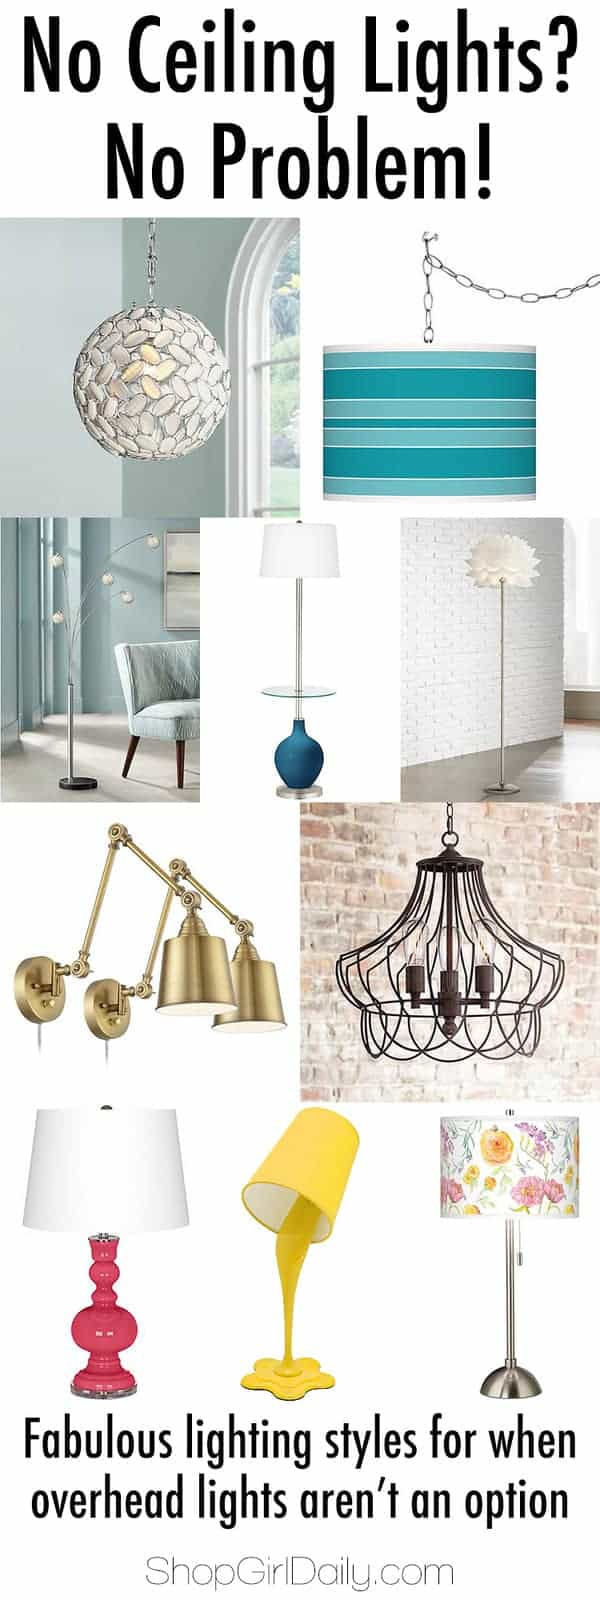 No ceiling lights? Check out these 4 lighting styles that will brighten any room.